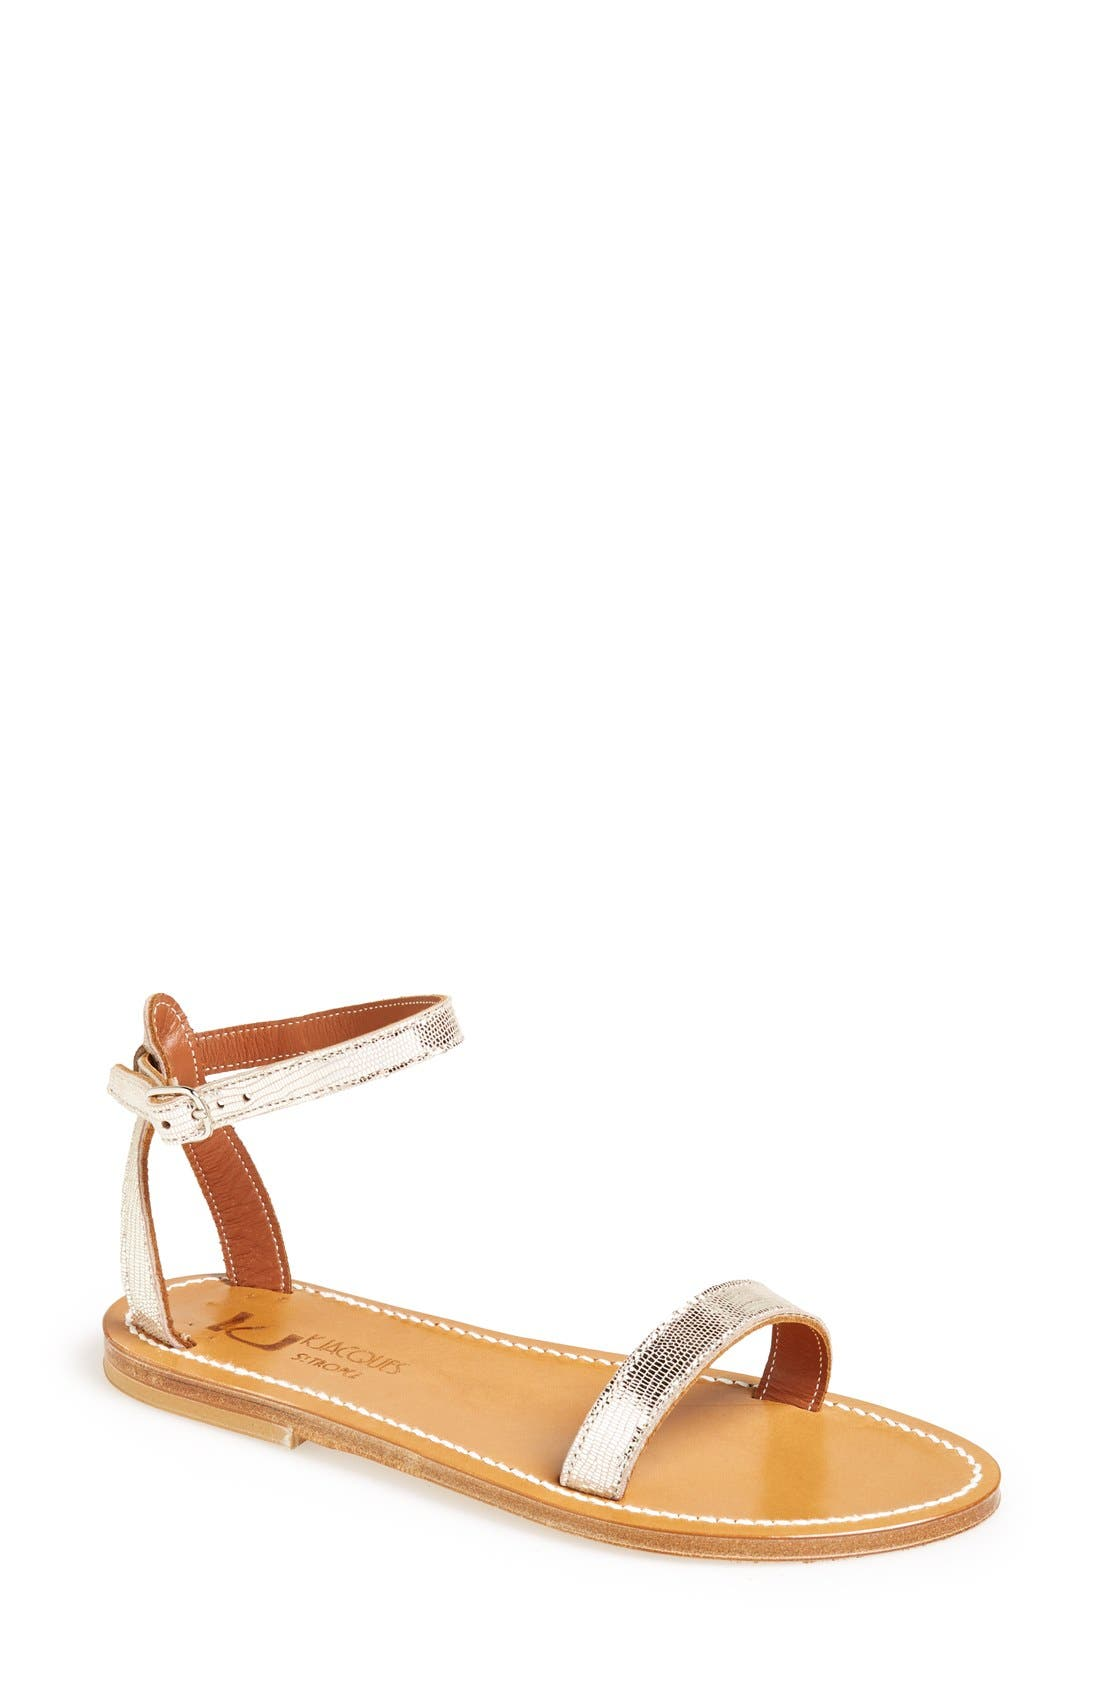 Alternate Image 1 Selected - K.Jacques St. Tropez 'Laura' Ankle Strap Sandal (Women)